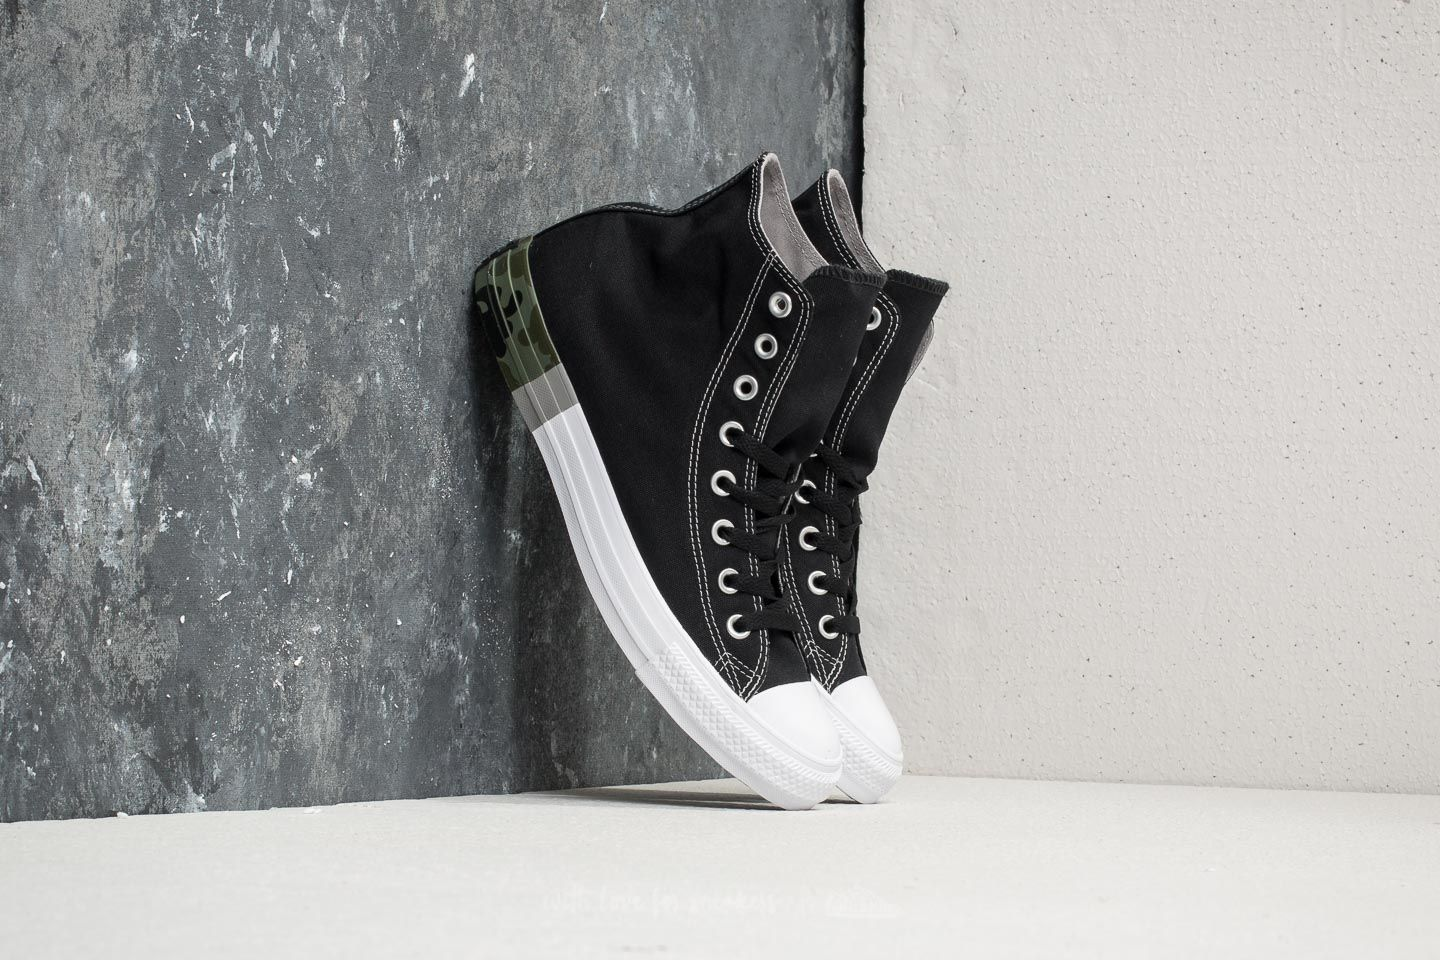 48c7214a58e8 Converse Chuck Taylor All Star Hi Black  Dolphin  White